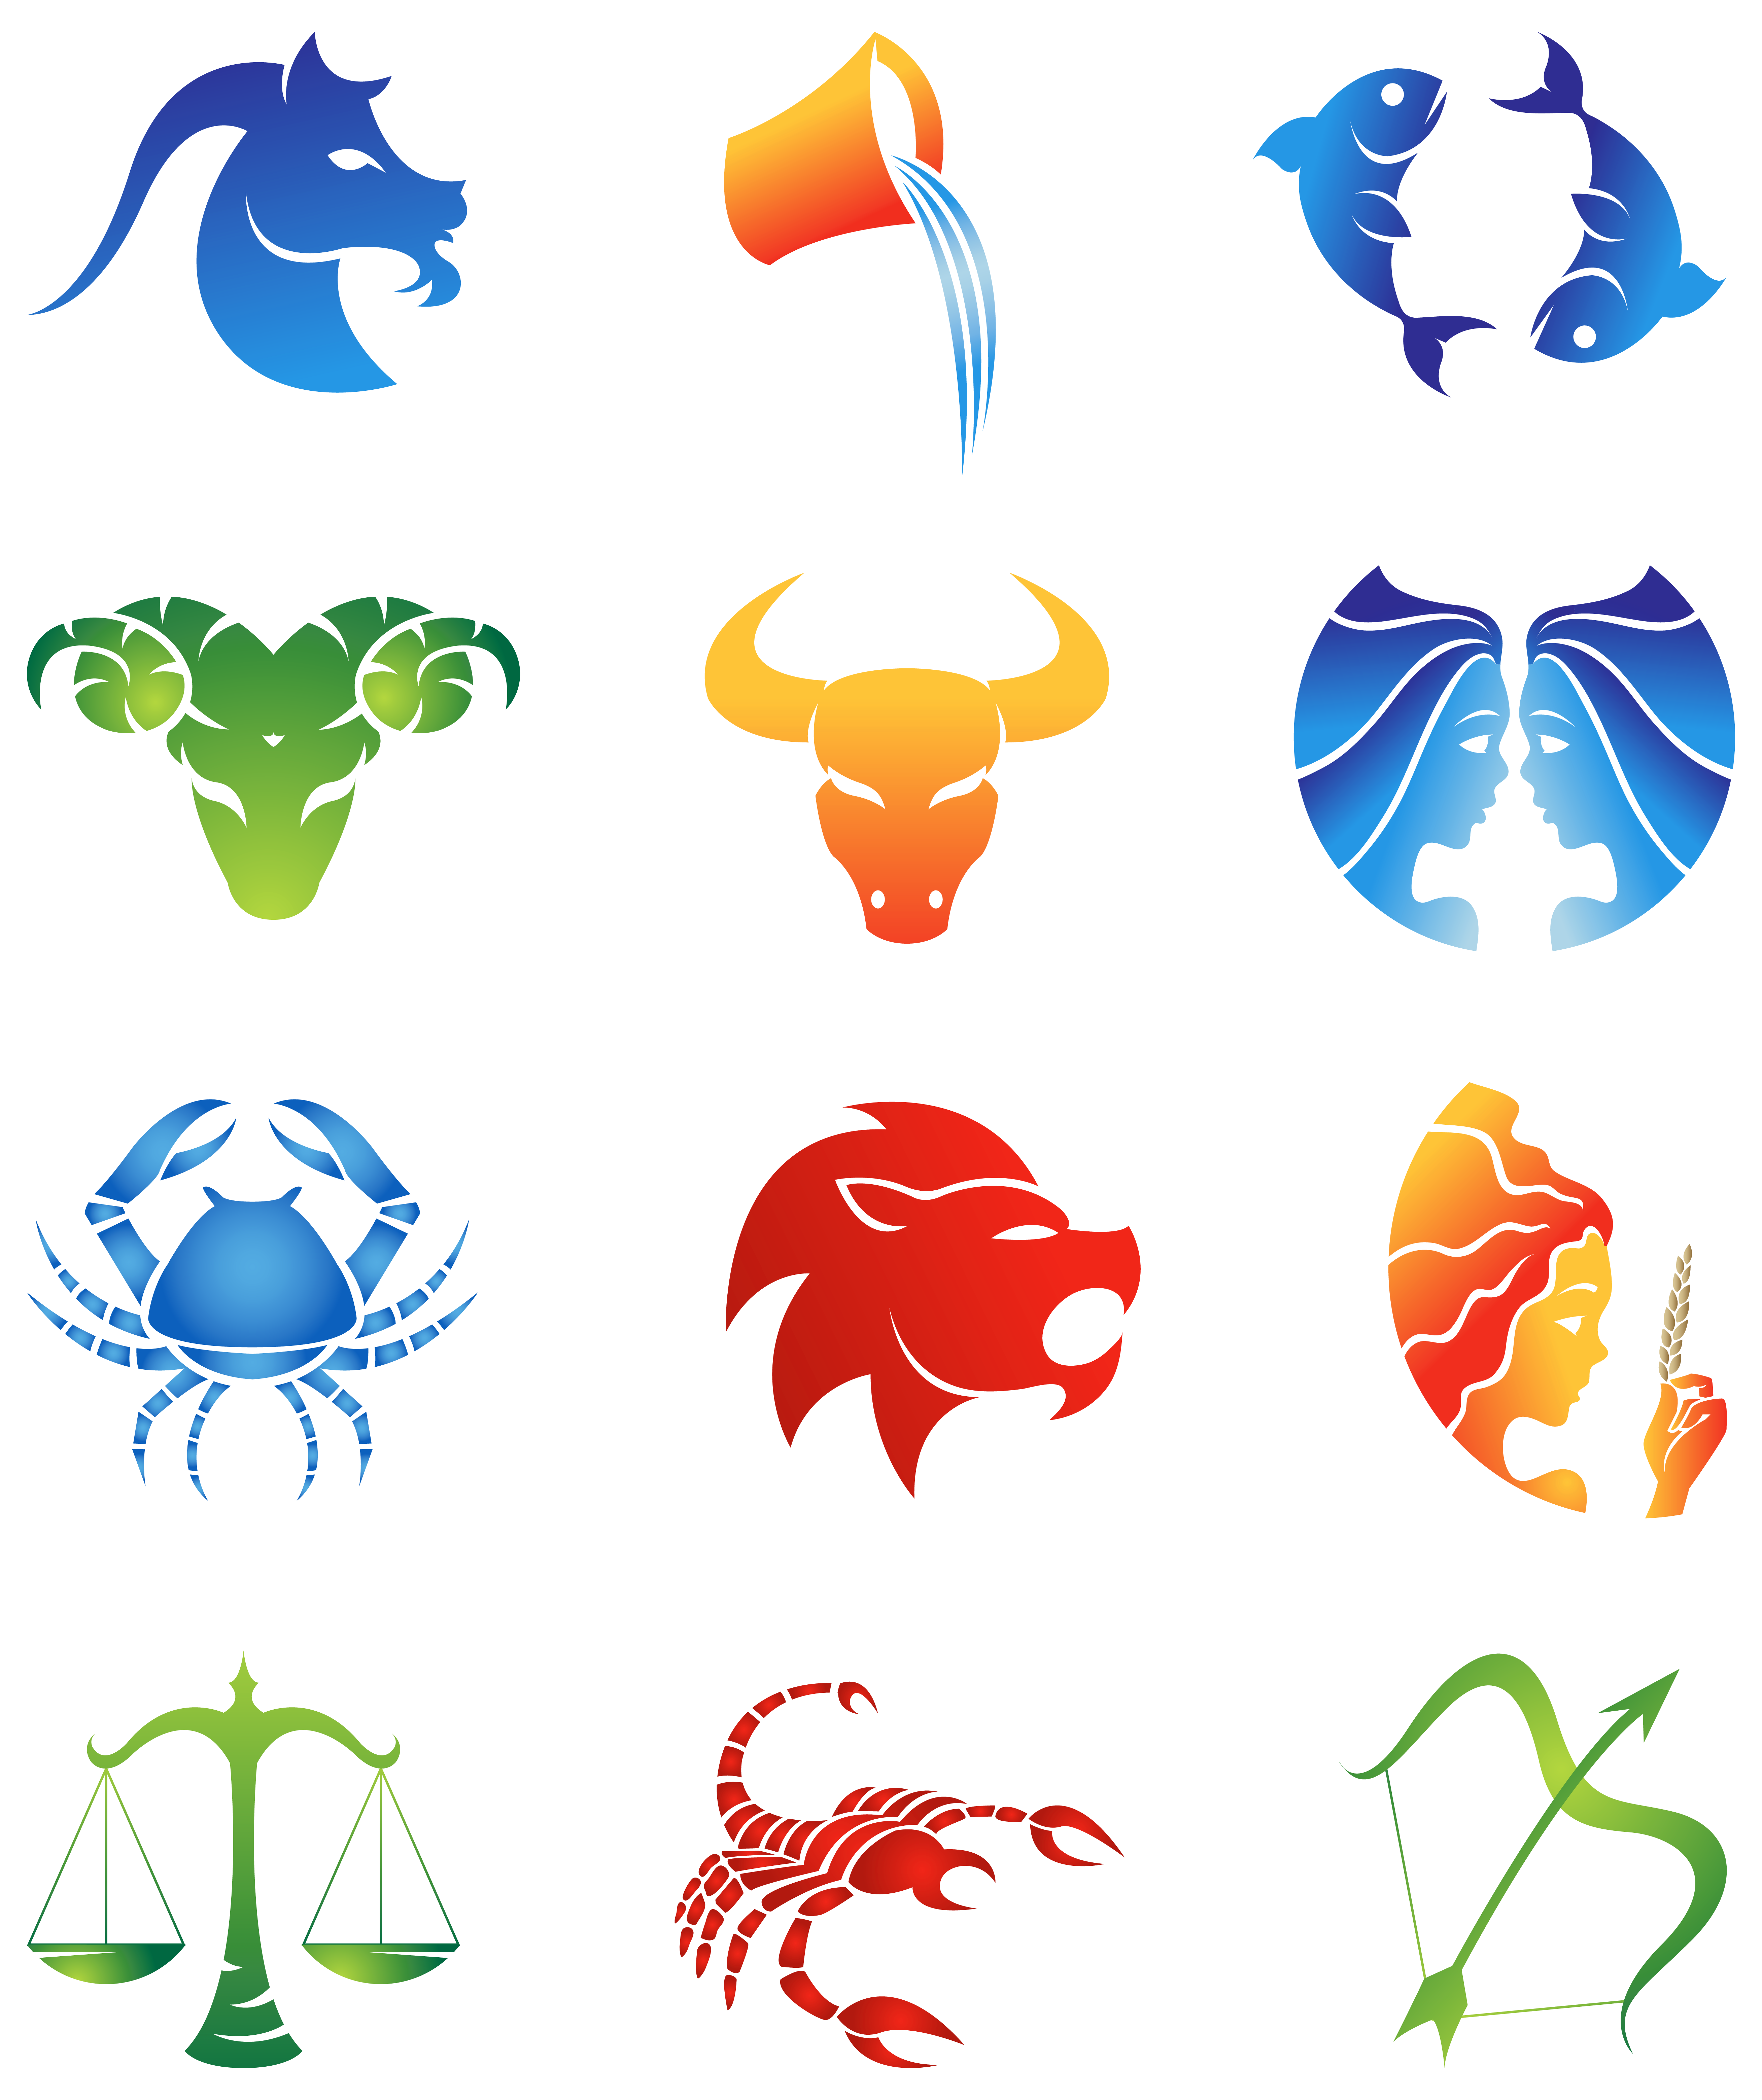 Zodiac signs images clipart picture black and white Colourful Zodiac Signs Set PNG Clipart Image | Gallery ... picture black and white